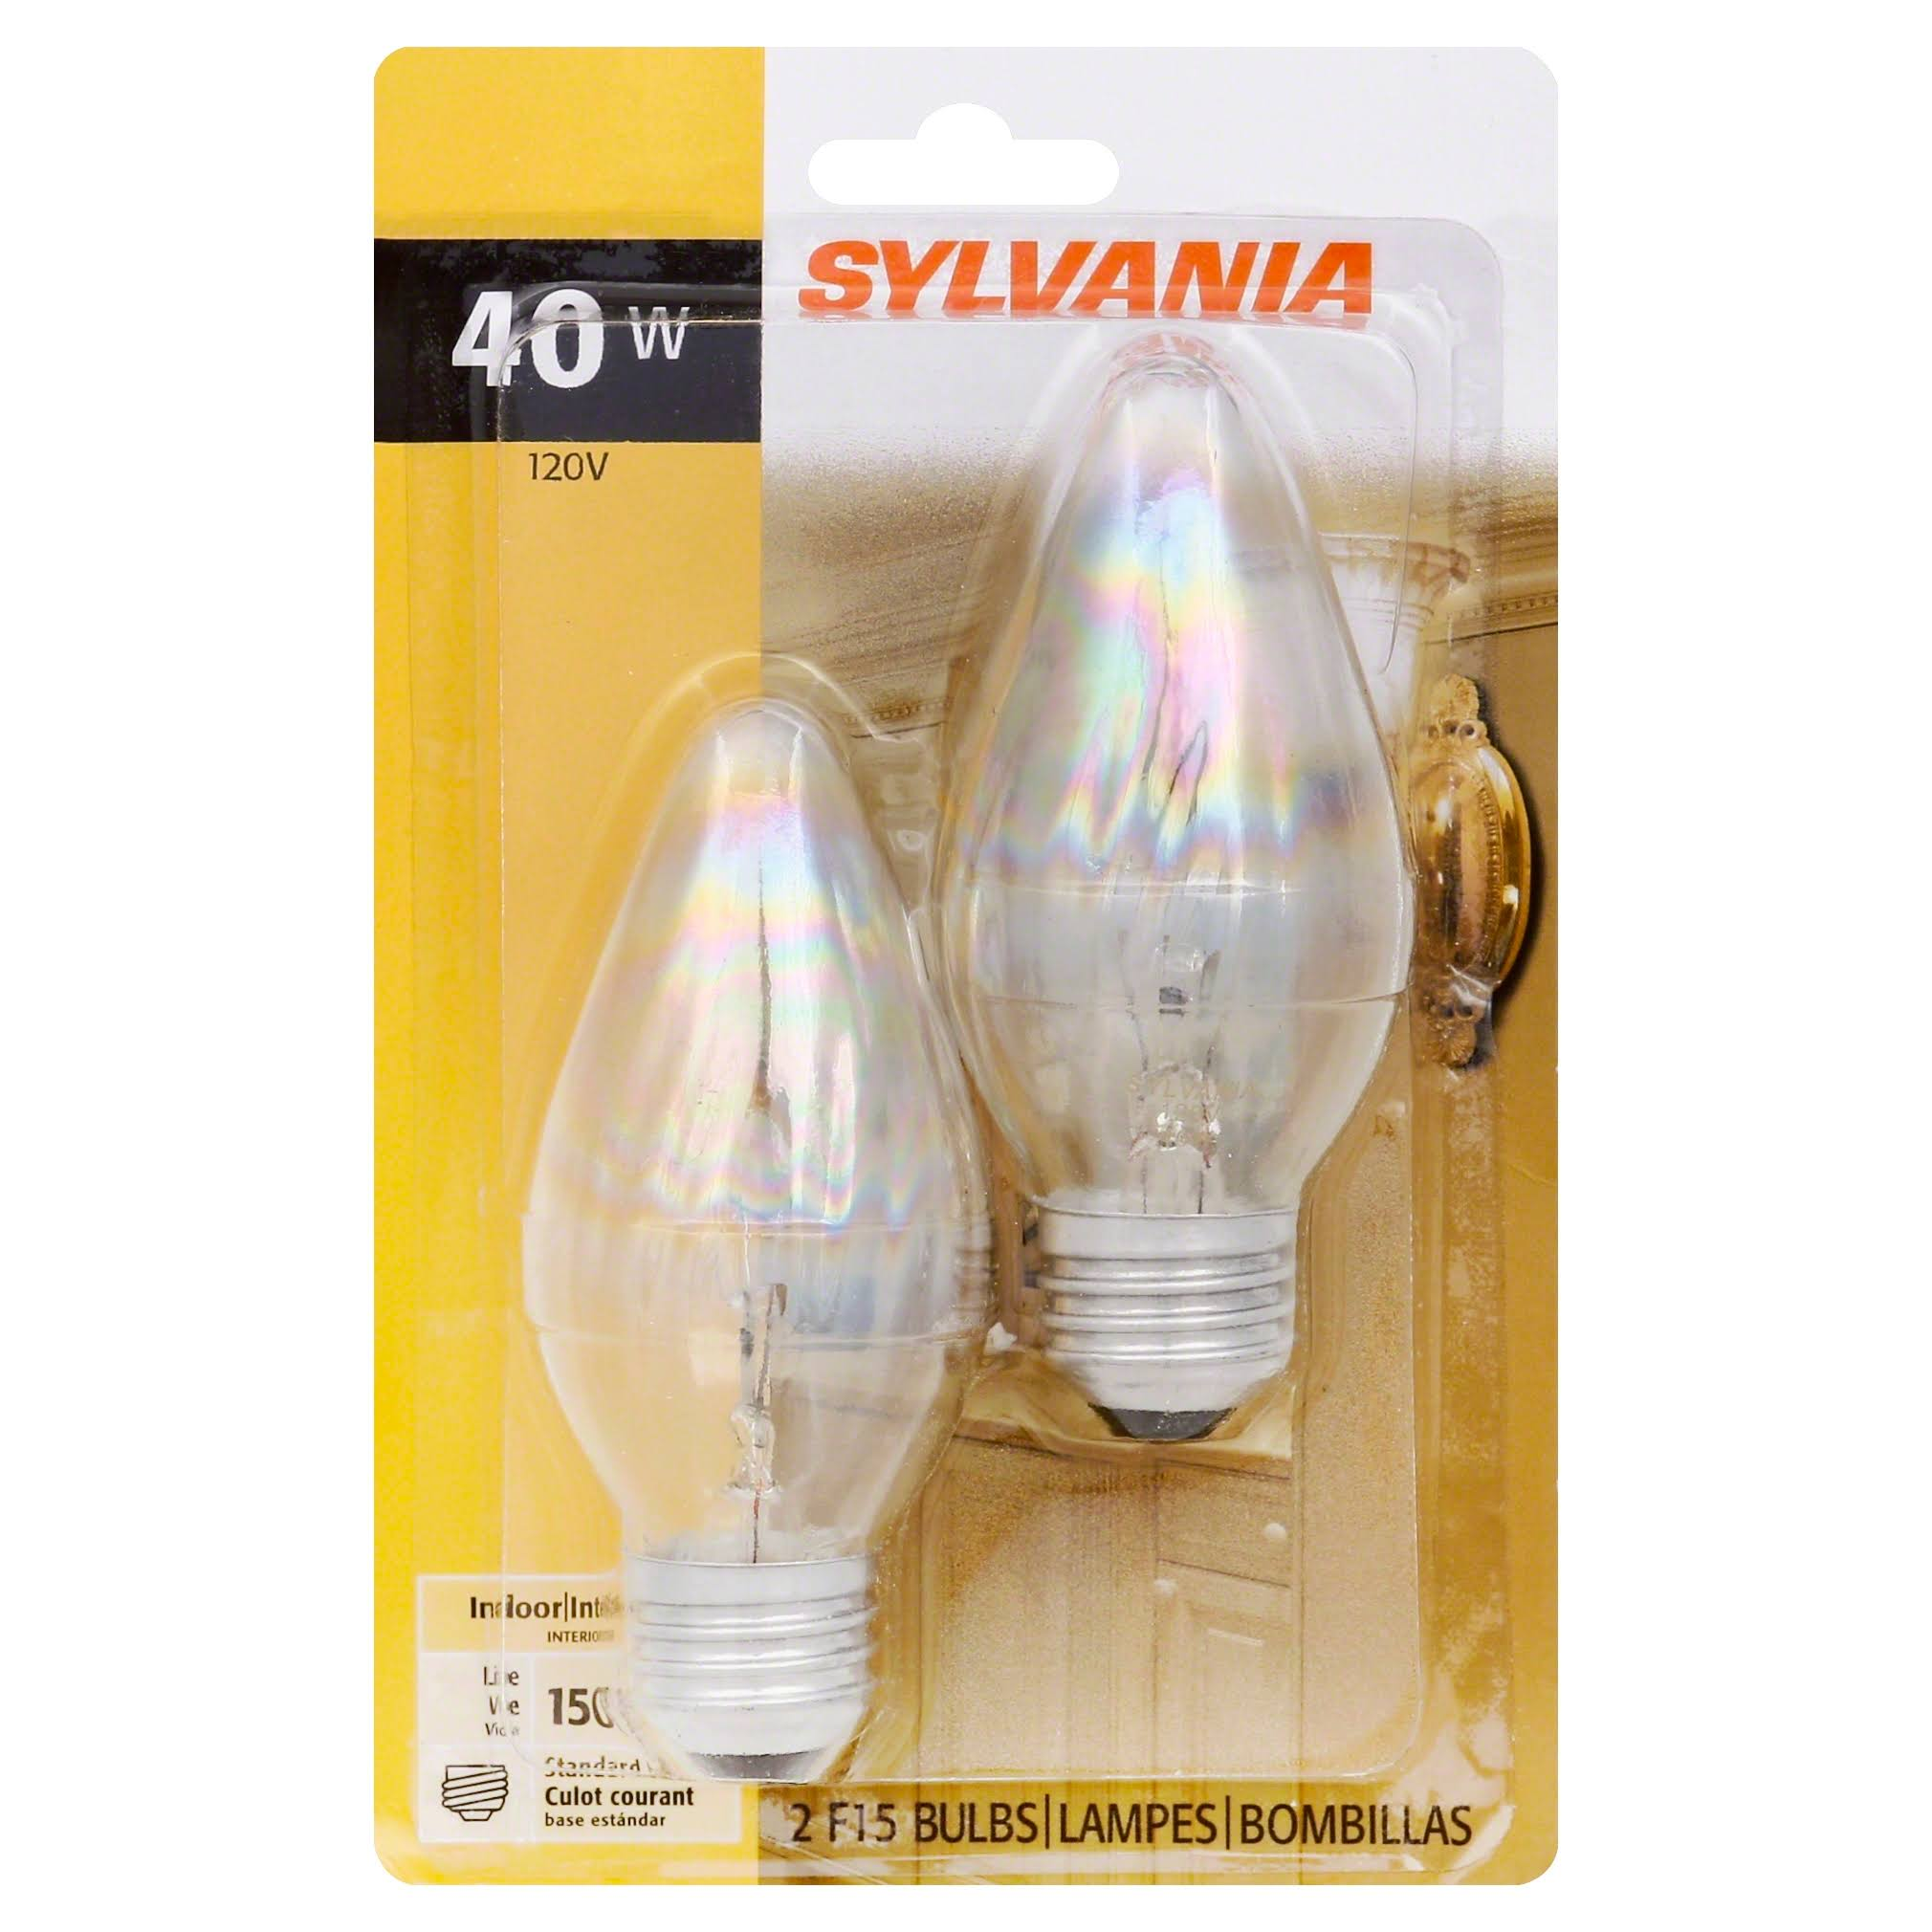 Sylvania Flame Tip Decorative Light Bulb - 40w, 120v, x2